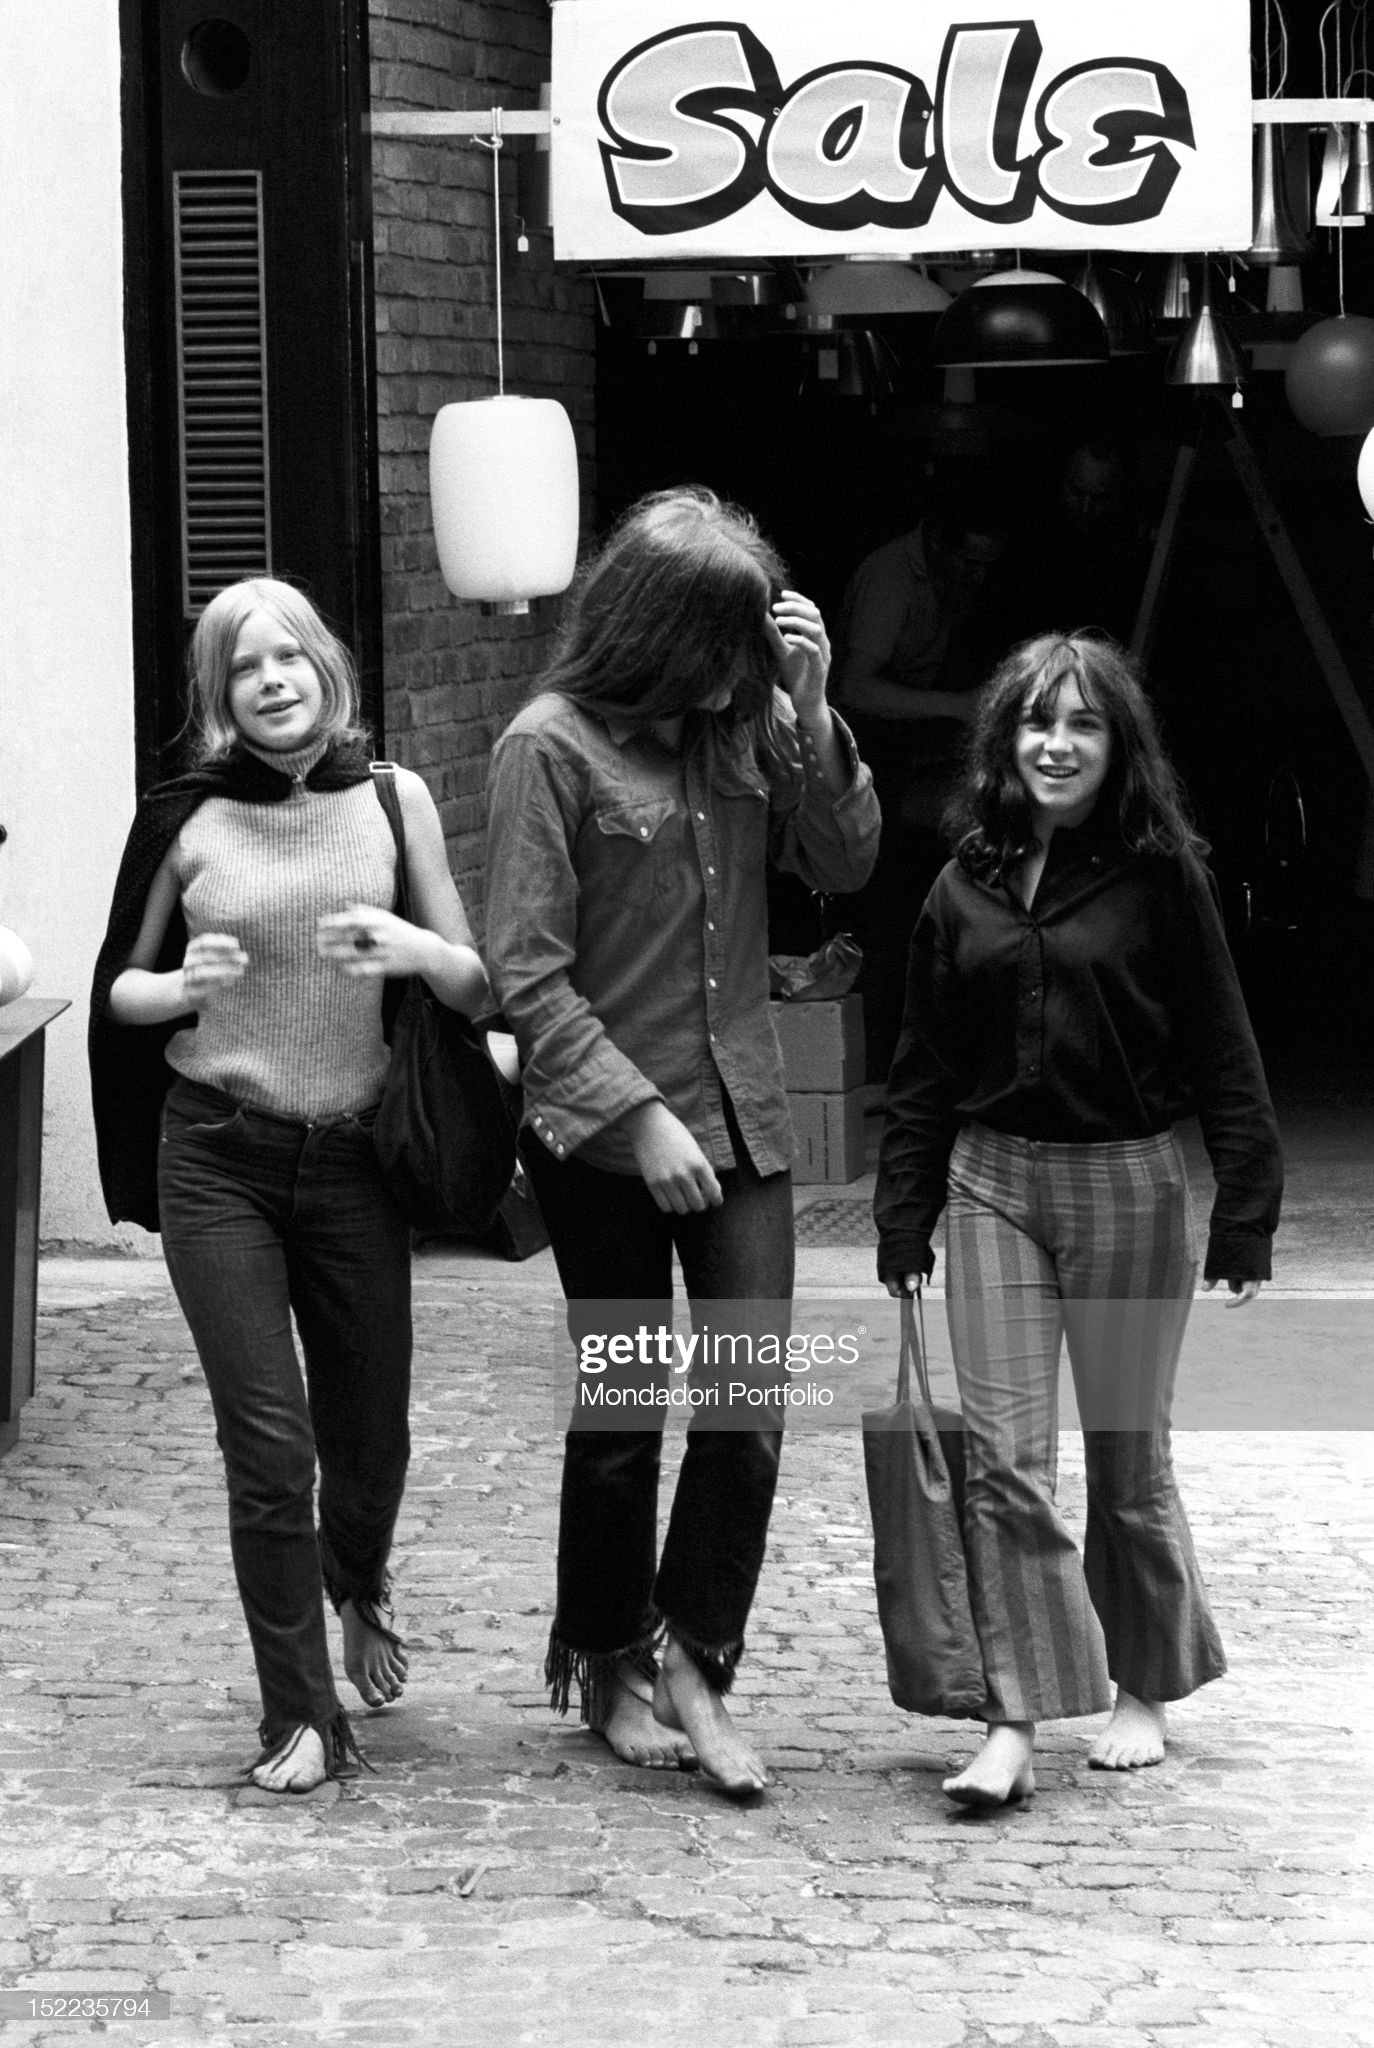 https://media.gettyimages.com/photos/three-british-girls-walking-barefoot-in-the-streets-of-the-city-they-picture-id152235794?s=2048x2048